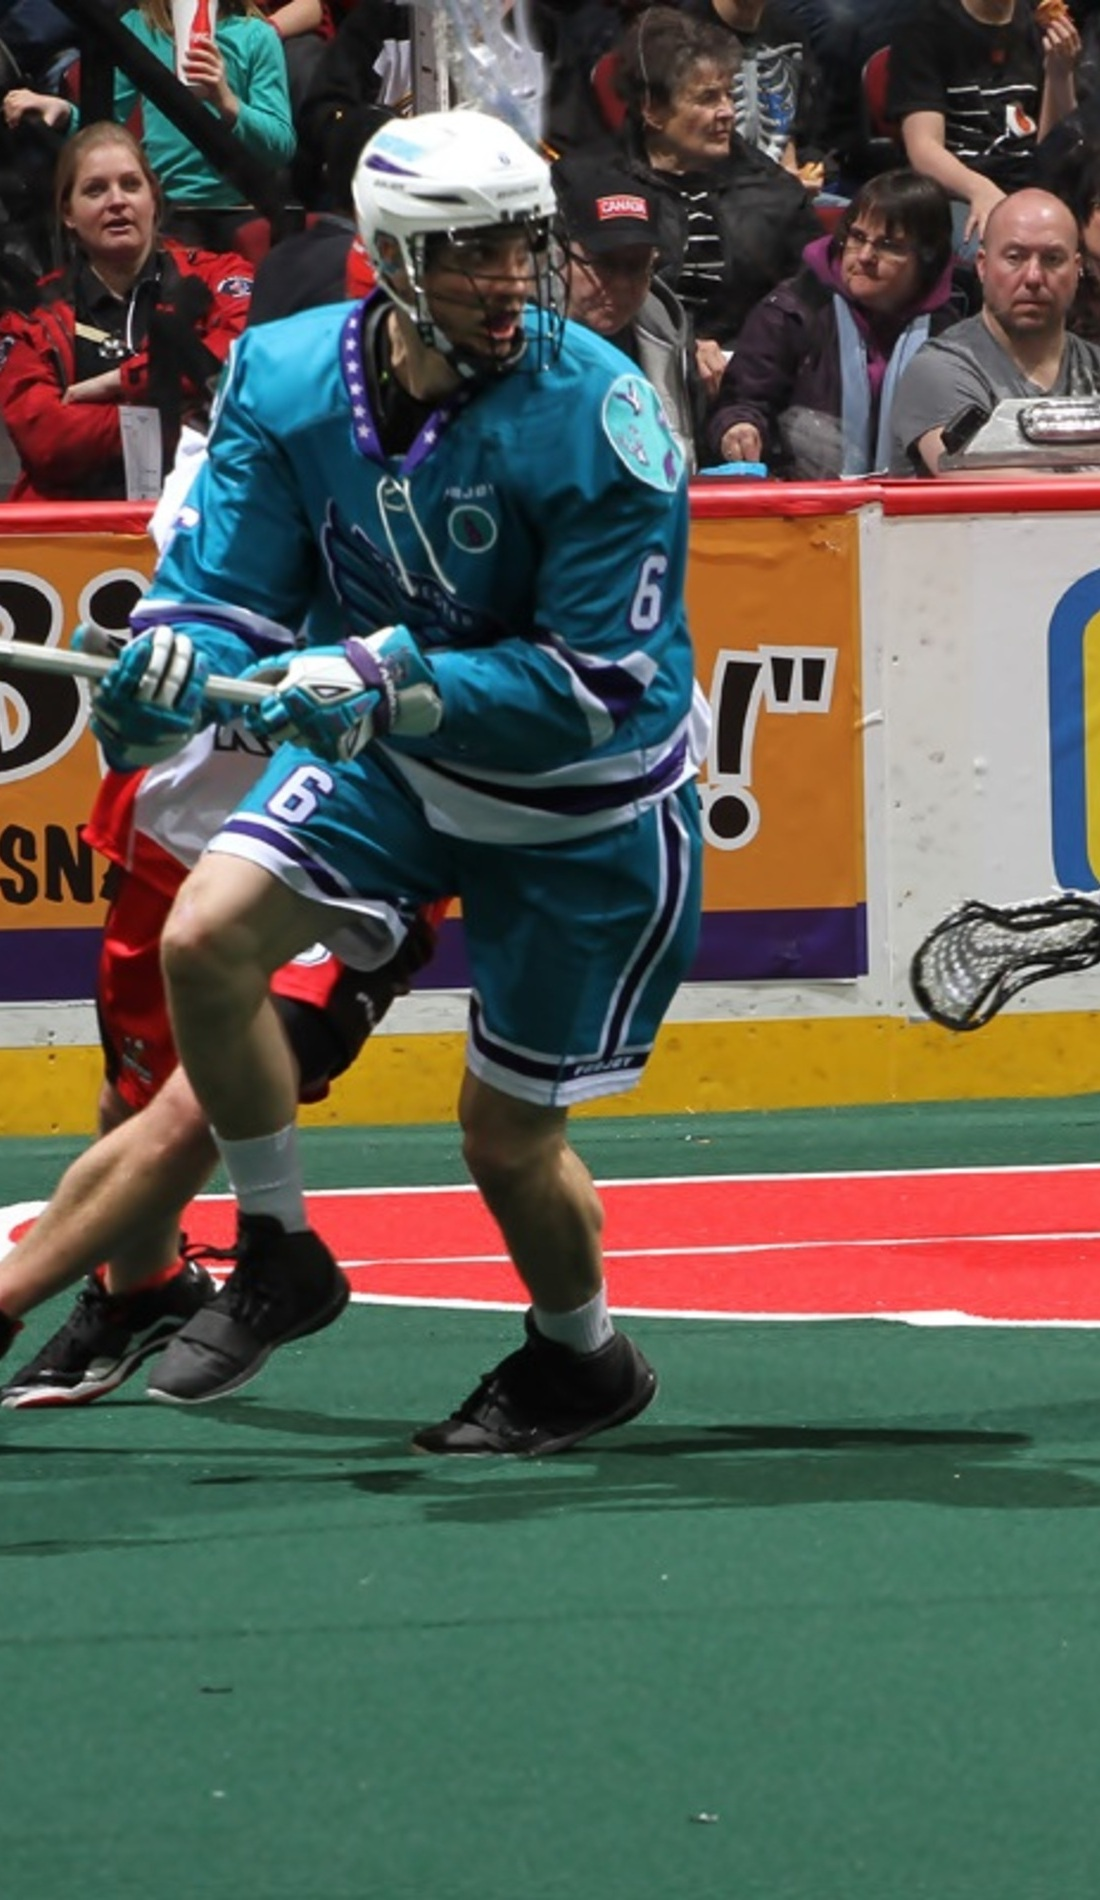 A Rochester Knighthawks live event